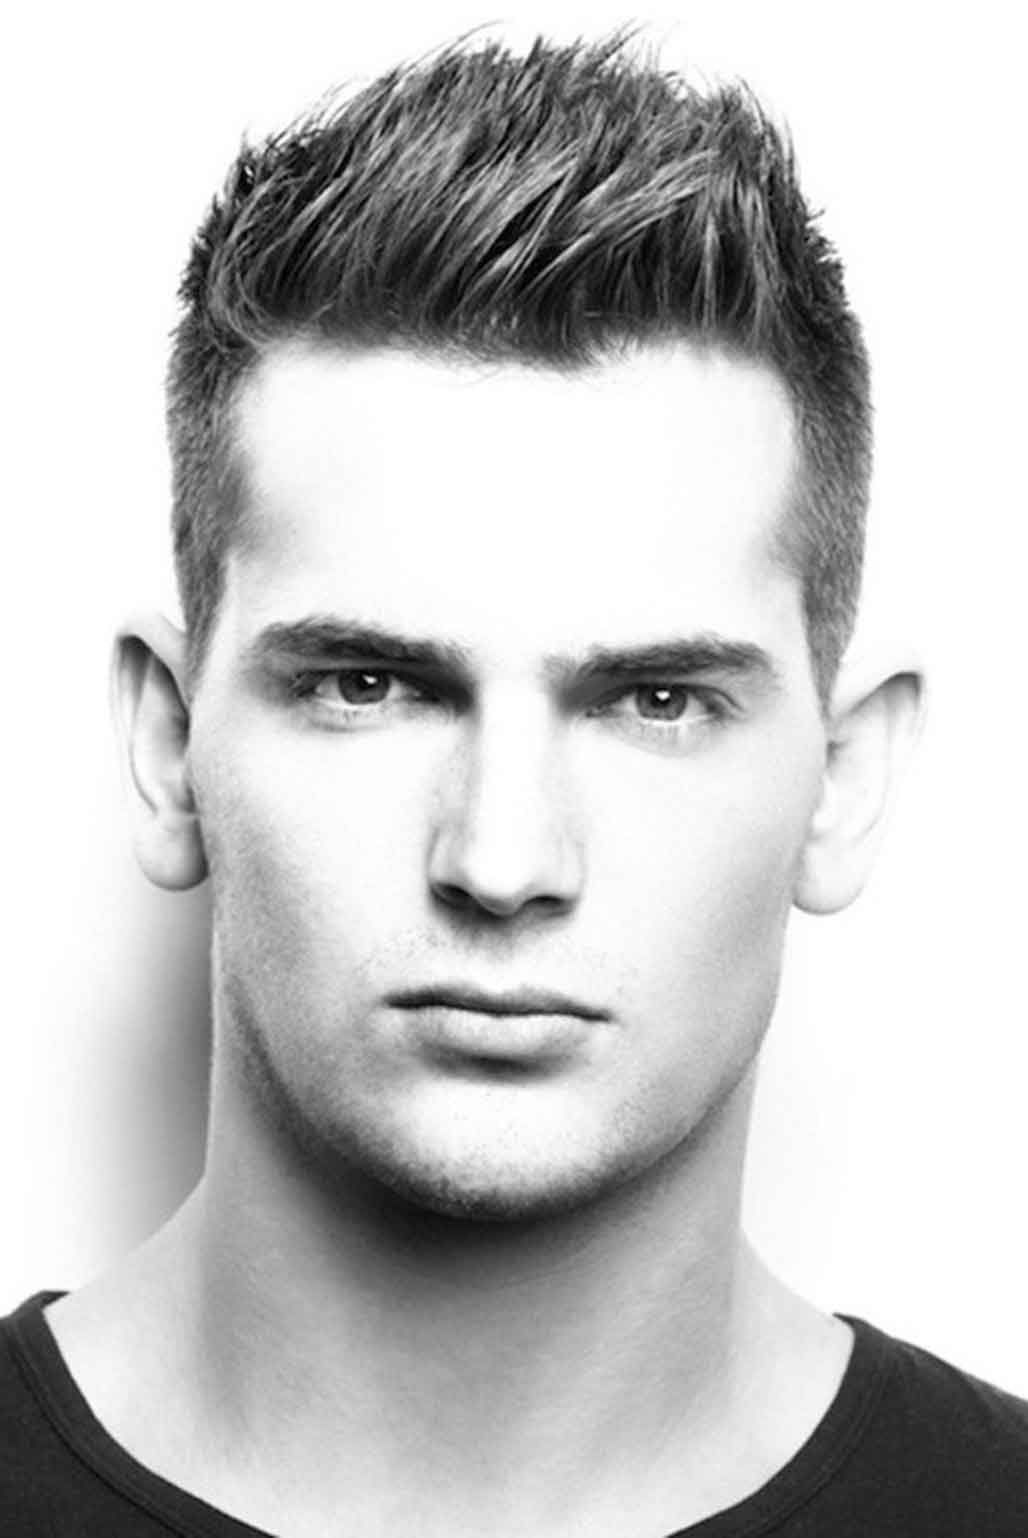 Hairstyle For Square Face Male Black – Wavy Haircut